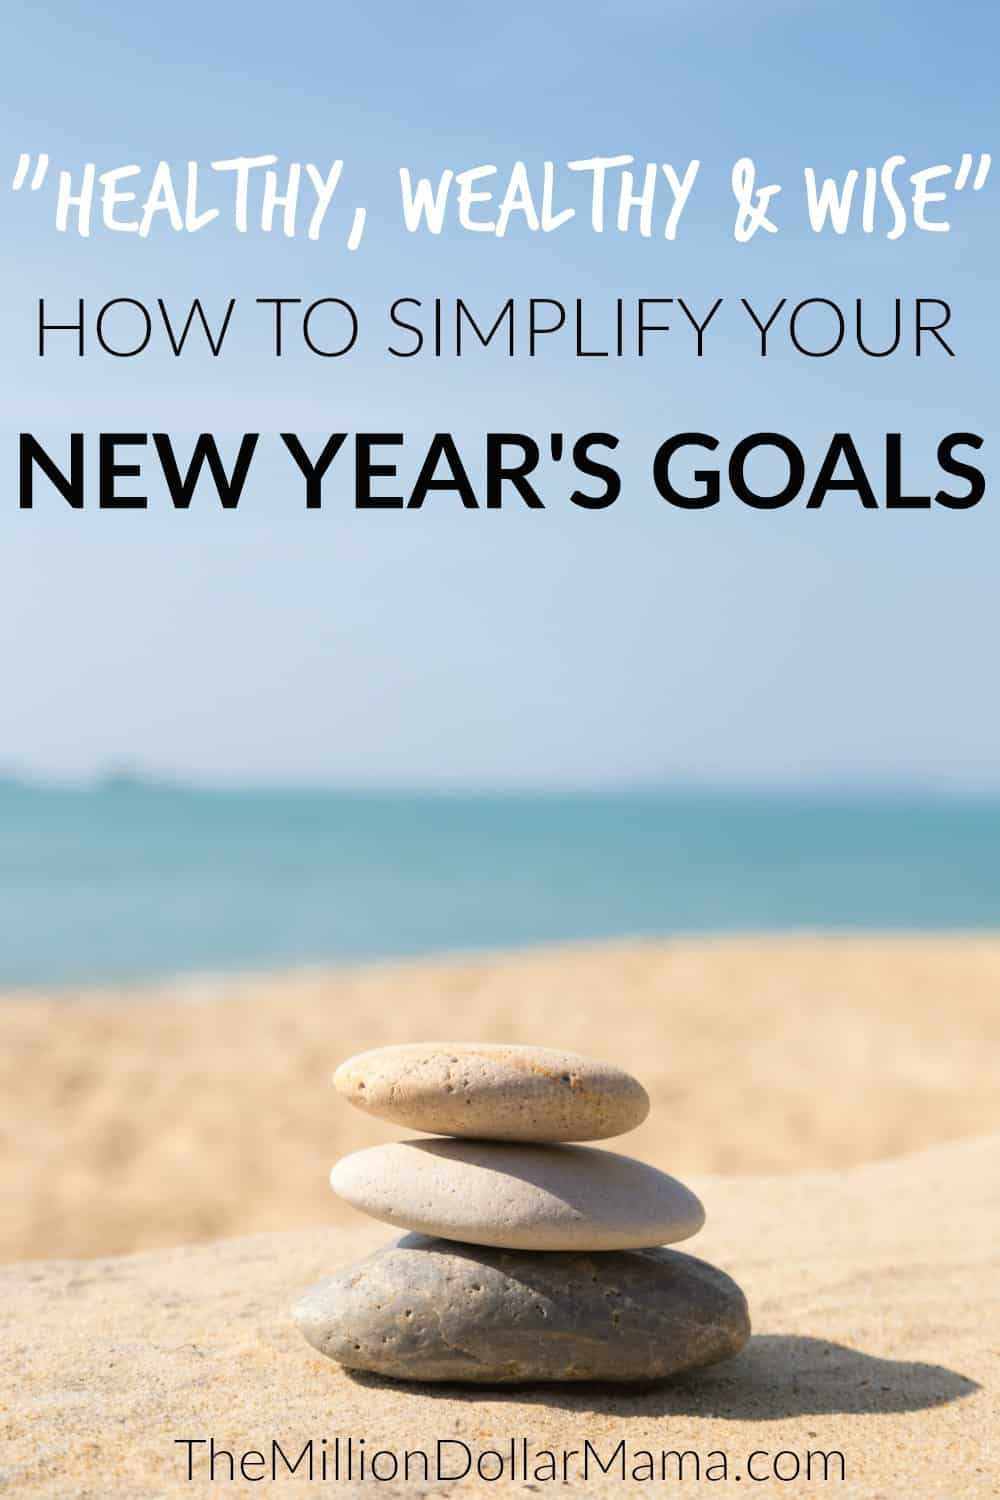 New Year's Resolution Ideas - How to simplify your New Year's Resolutions and become more healthy, wealthy and wise